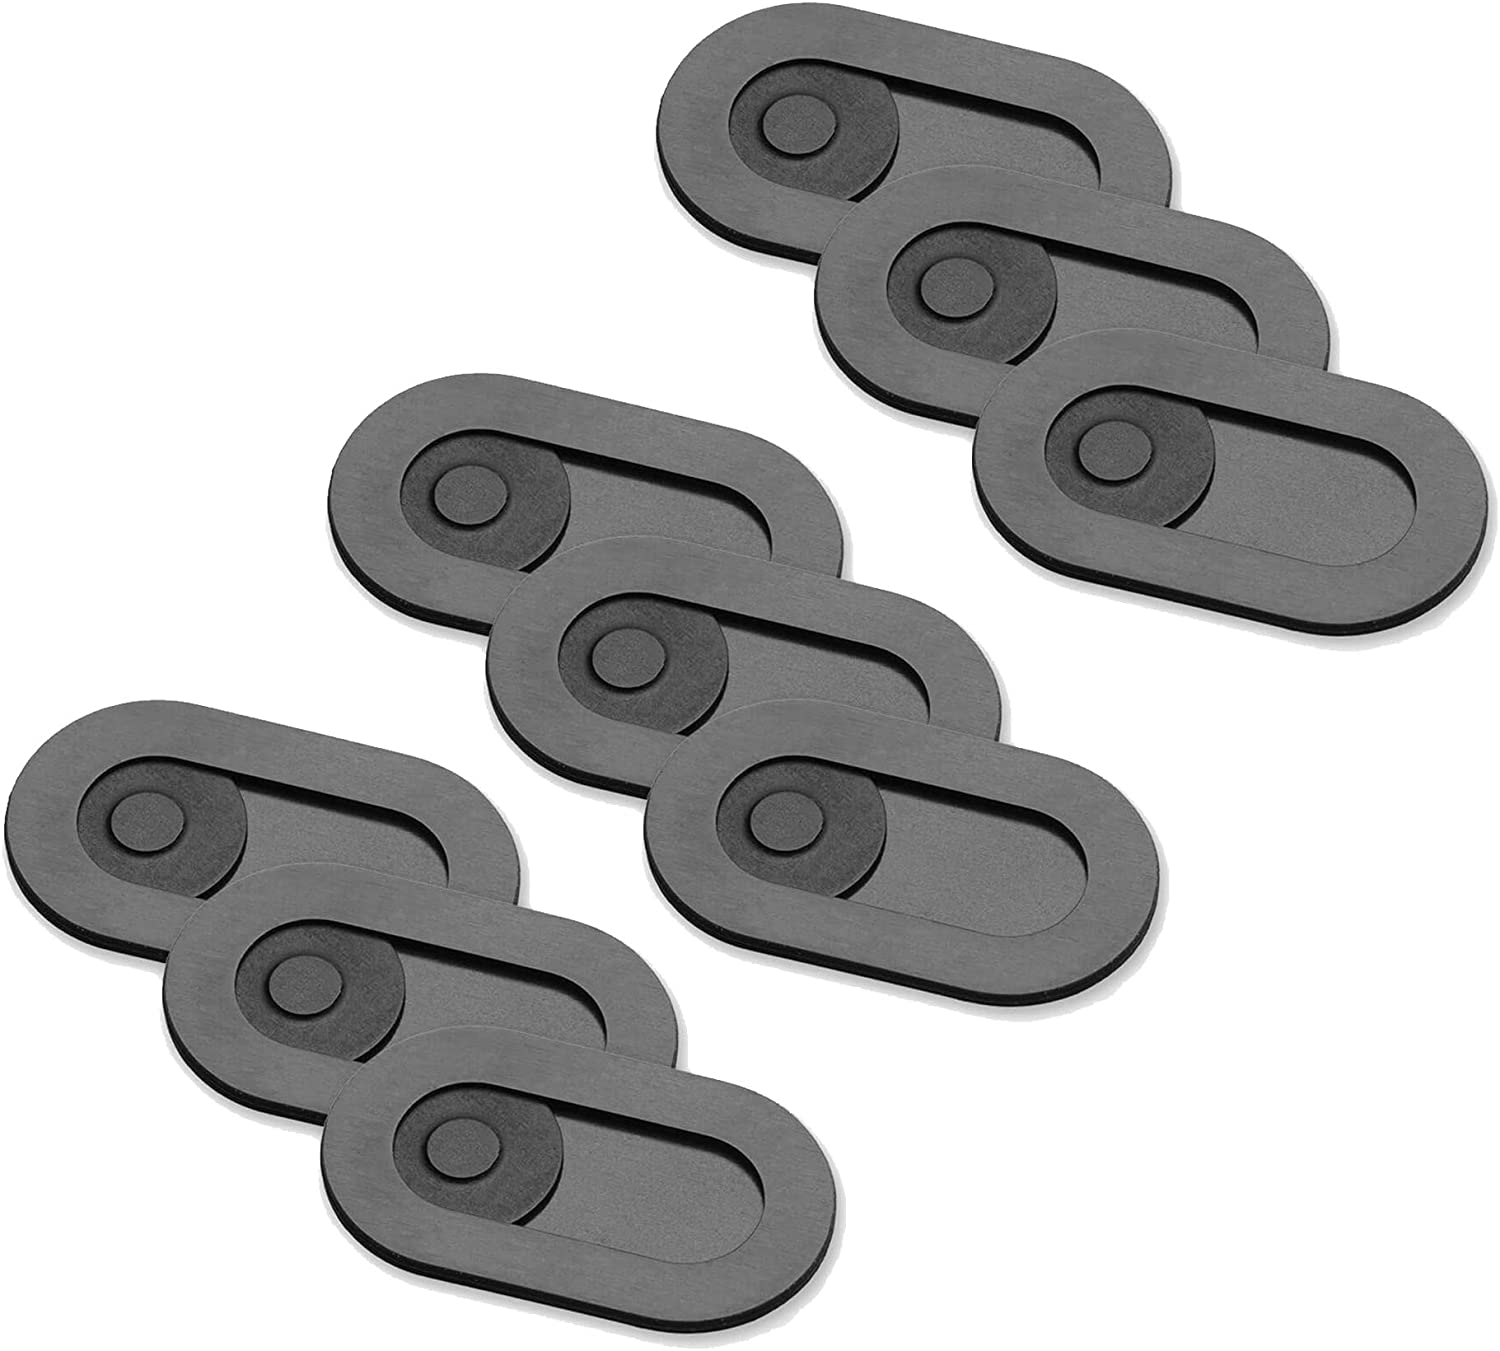 The Original Spyslide Premium Webcam Cover | 9-Pack Black | Ultra Thin (0.023 inch) | Fits Laptops, MacBook, Tablets & Smartphones | 100% Scratch Resistant | Made from Stainless Steel | by Spy-Fy